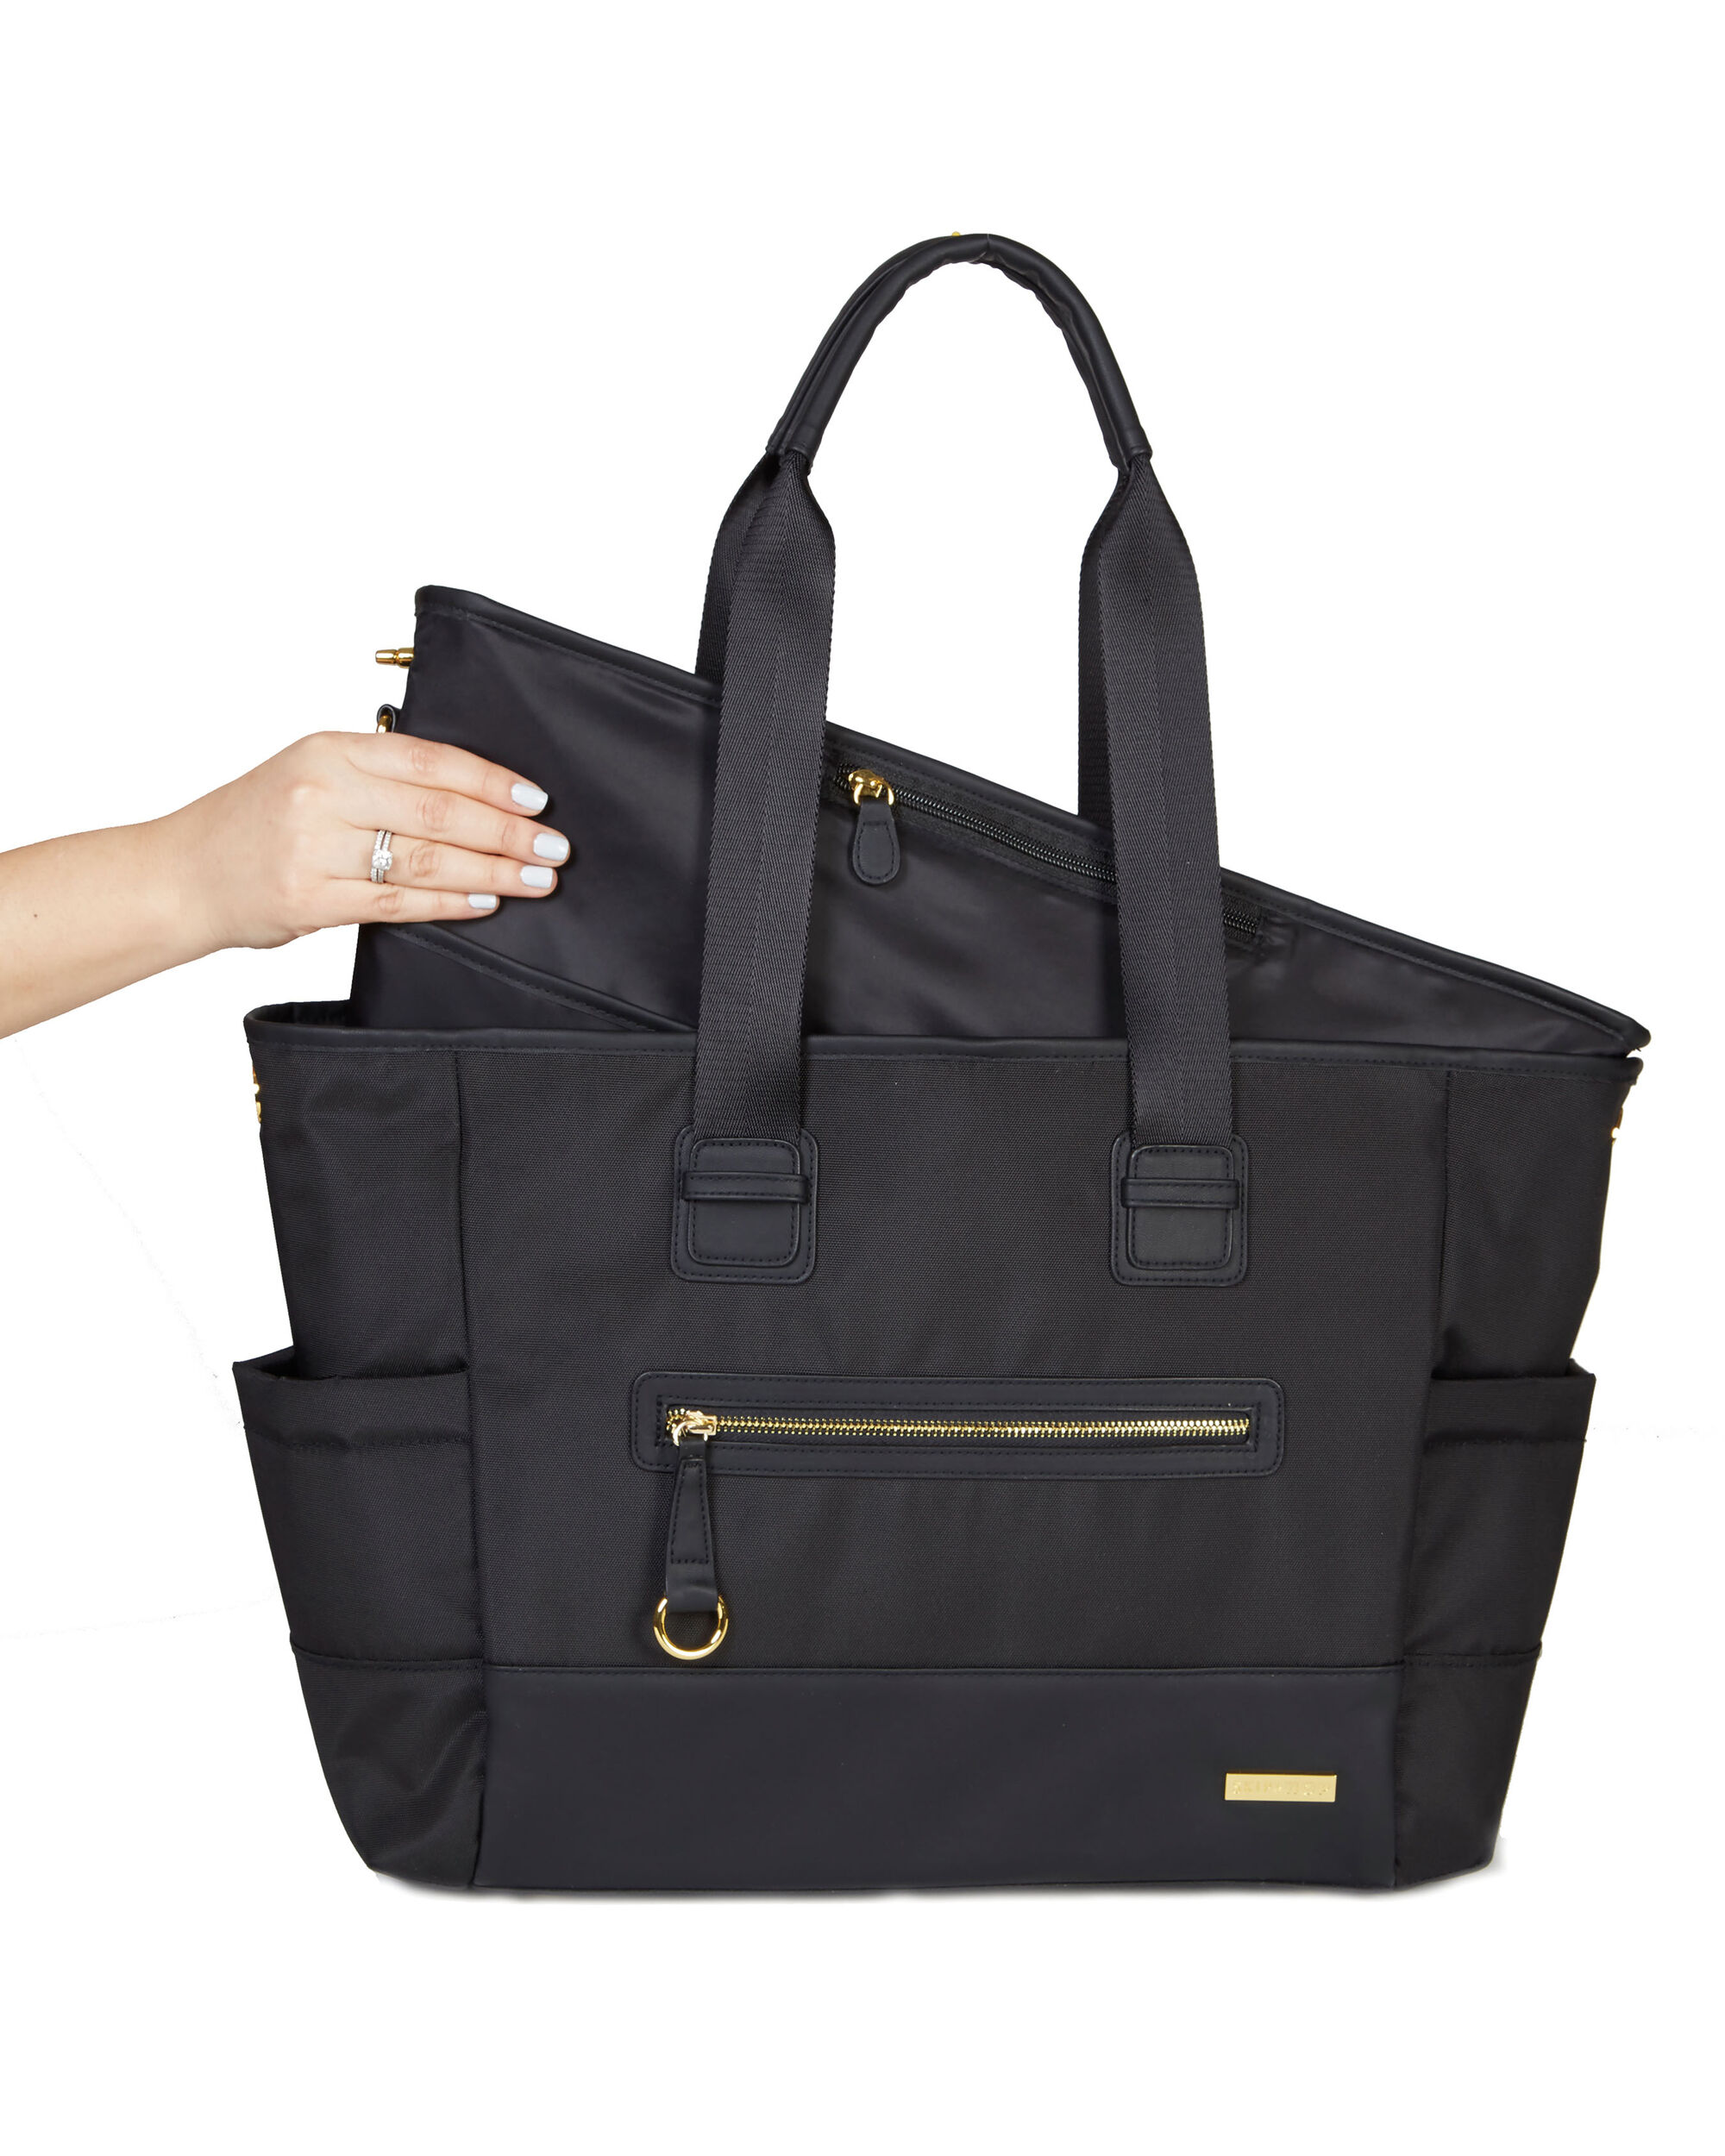 d97c61265457 Chelsea 2-in-1 Downtown Chic Diaper Tote | Skiphop.com